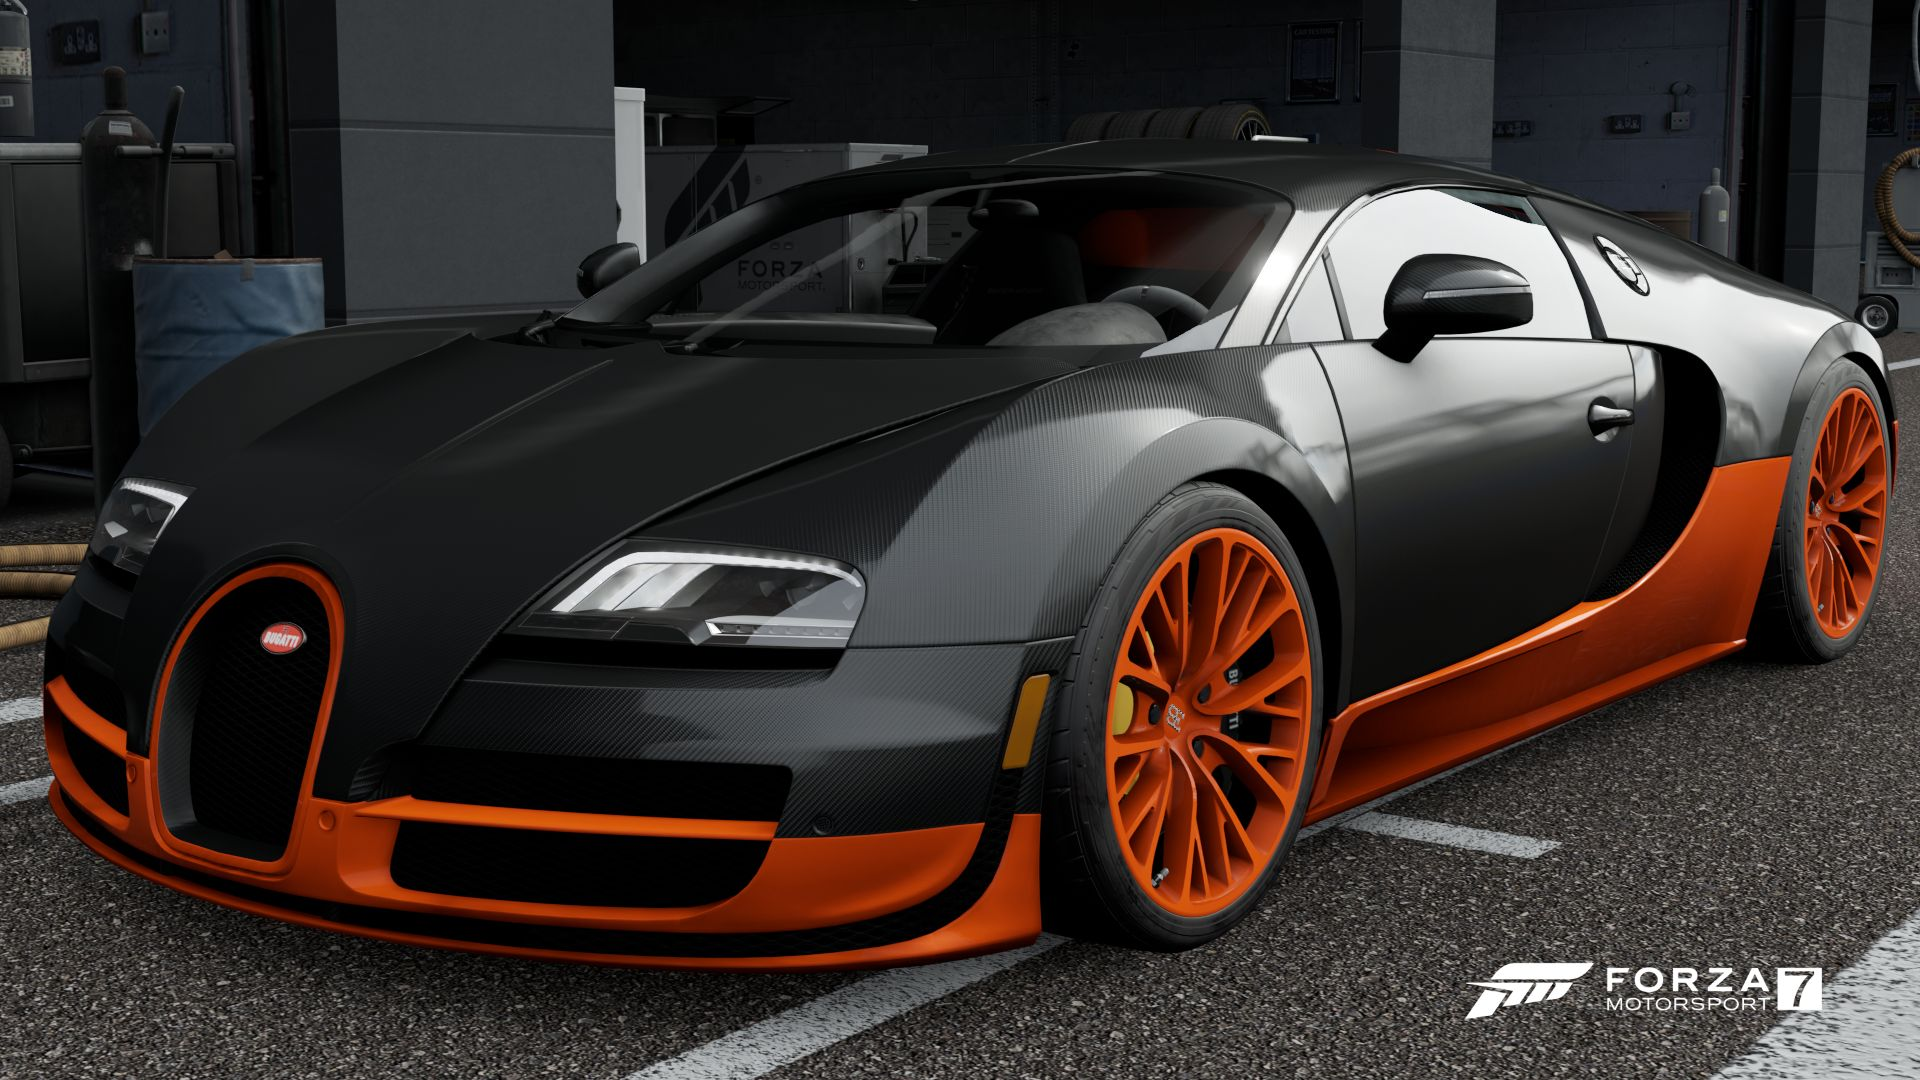 Bugatti Veyron Super Sport | Forza Motorsport Wiki | FANDOM powered ...